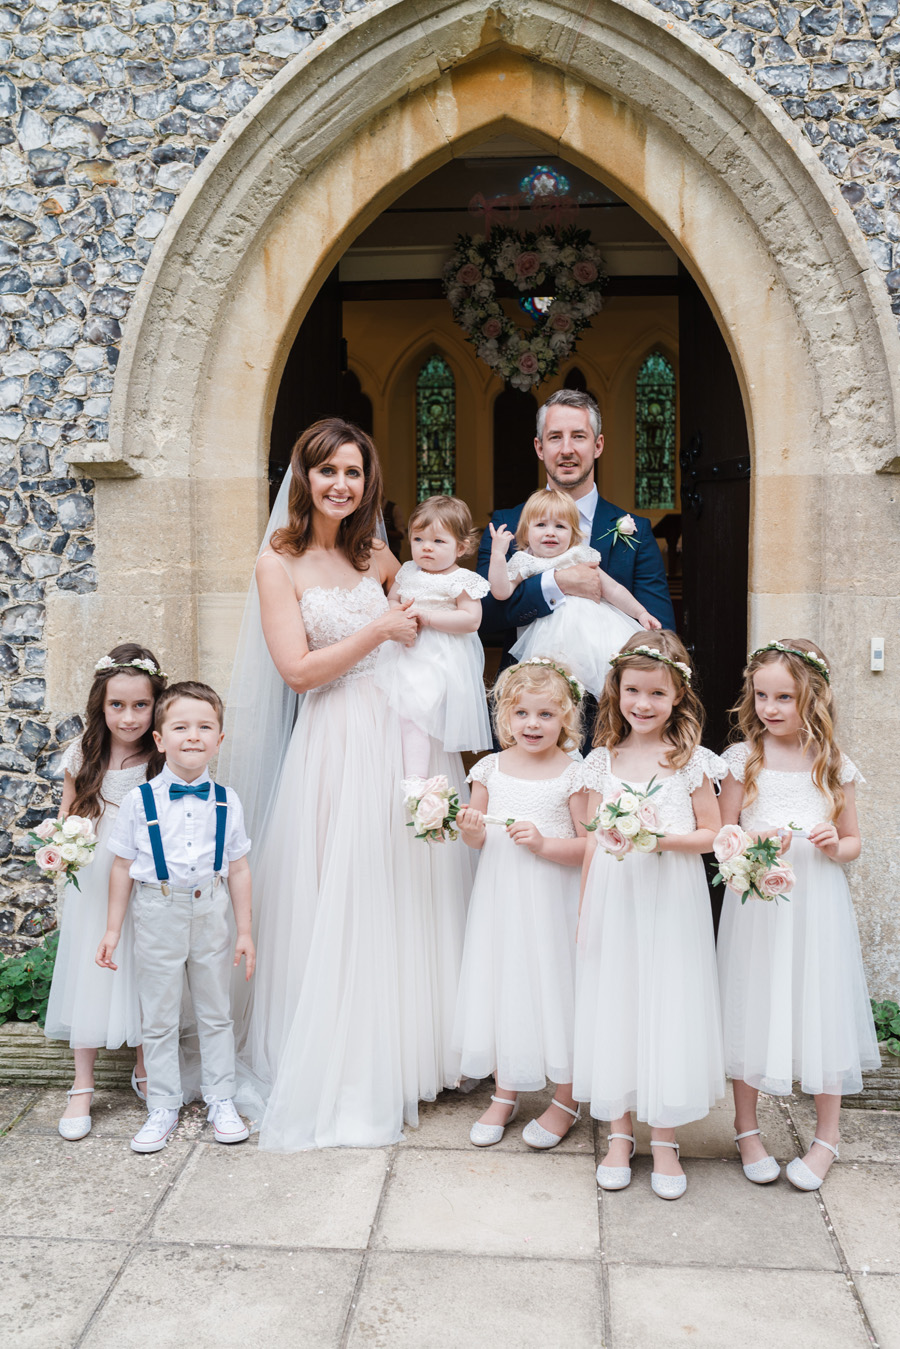 Elegant English wedding with afternoon tea, image credit Hannah McClune Photography (22)